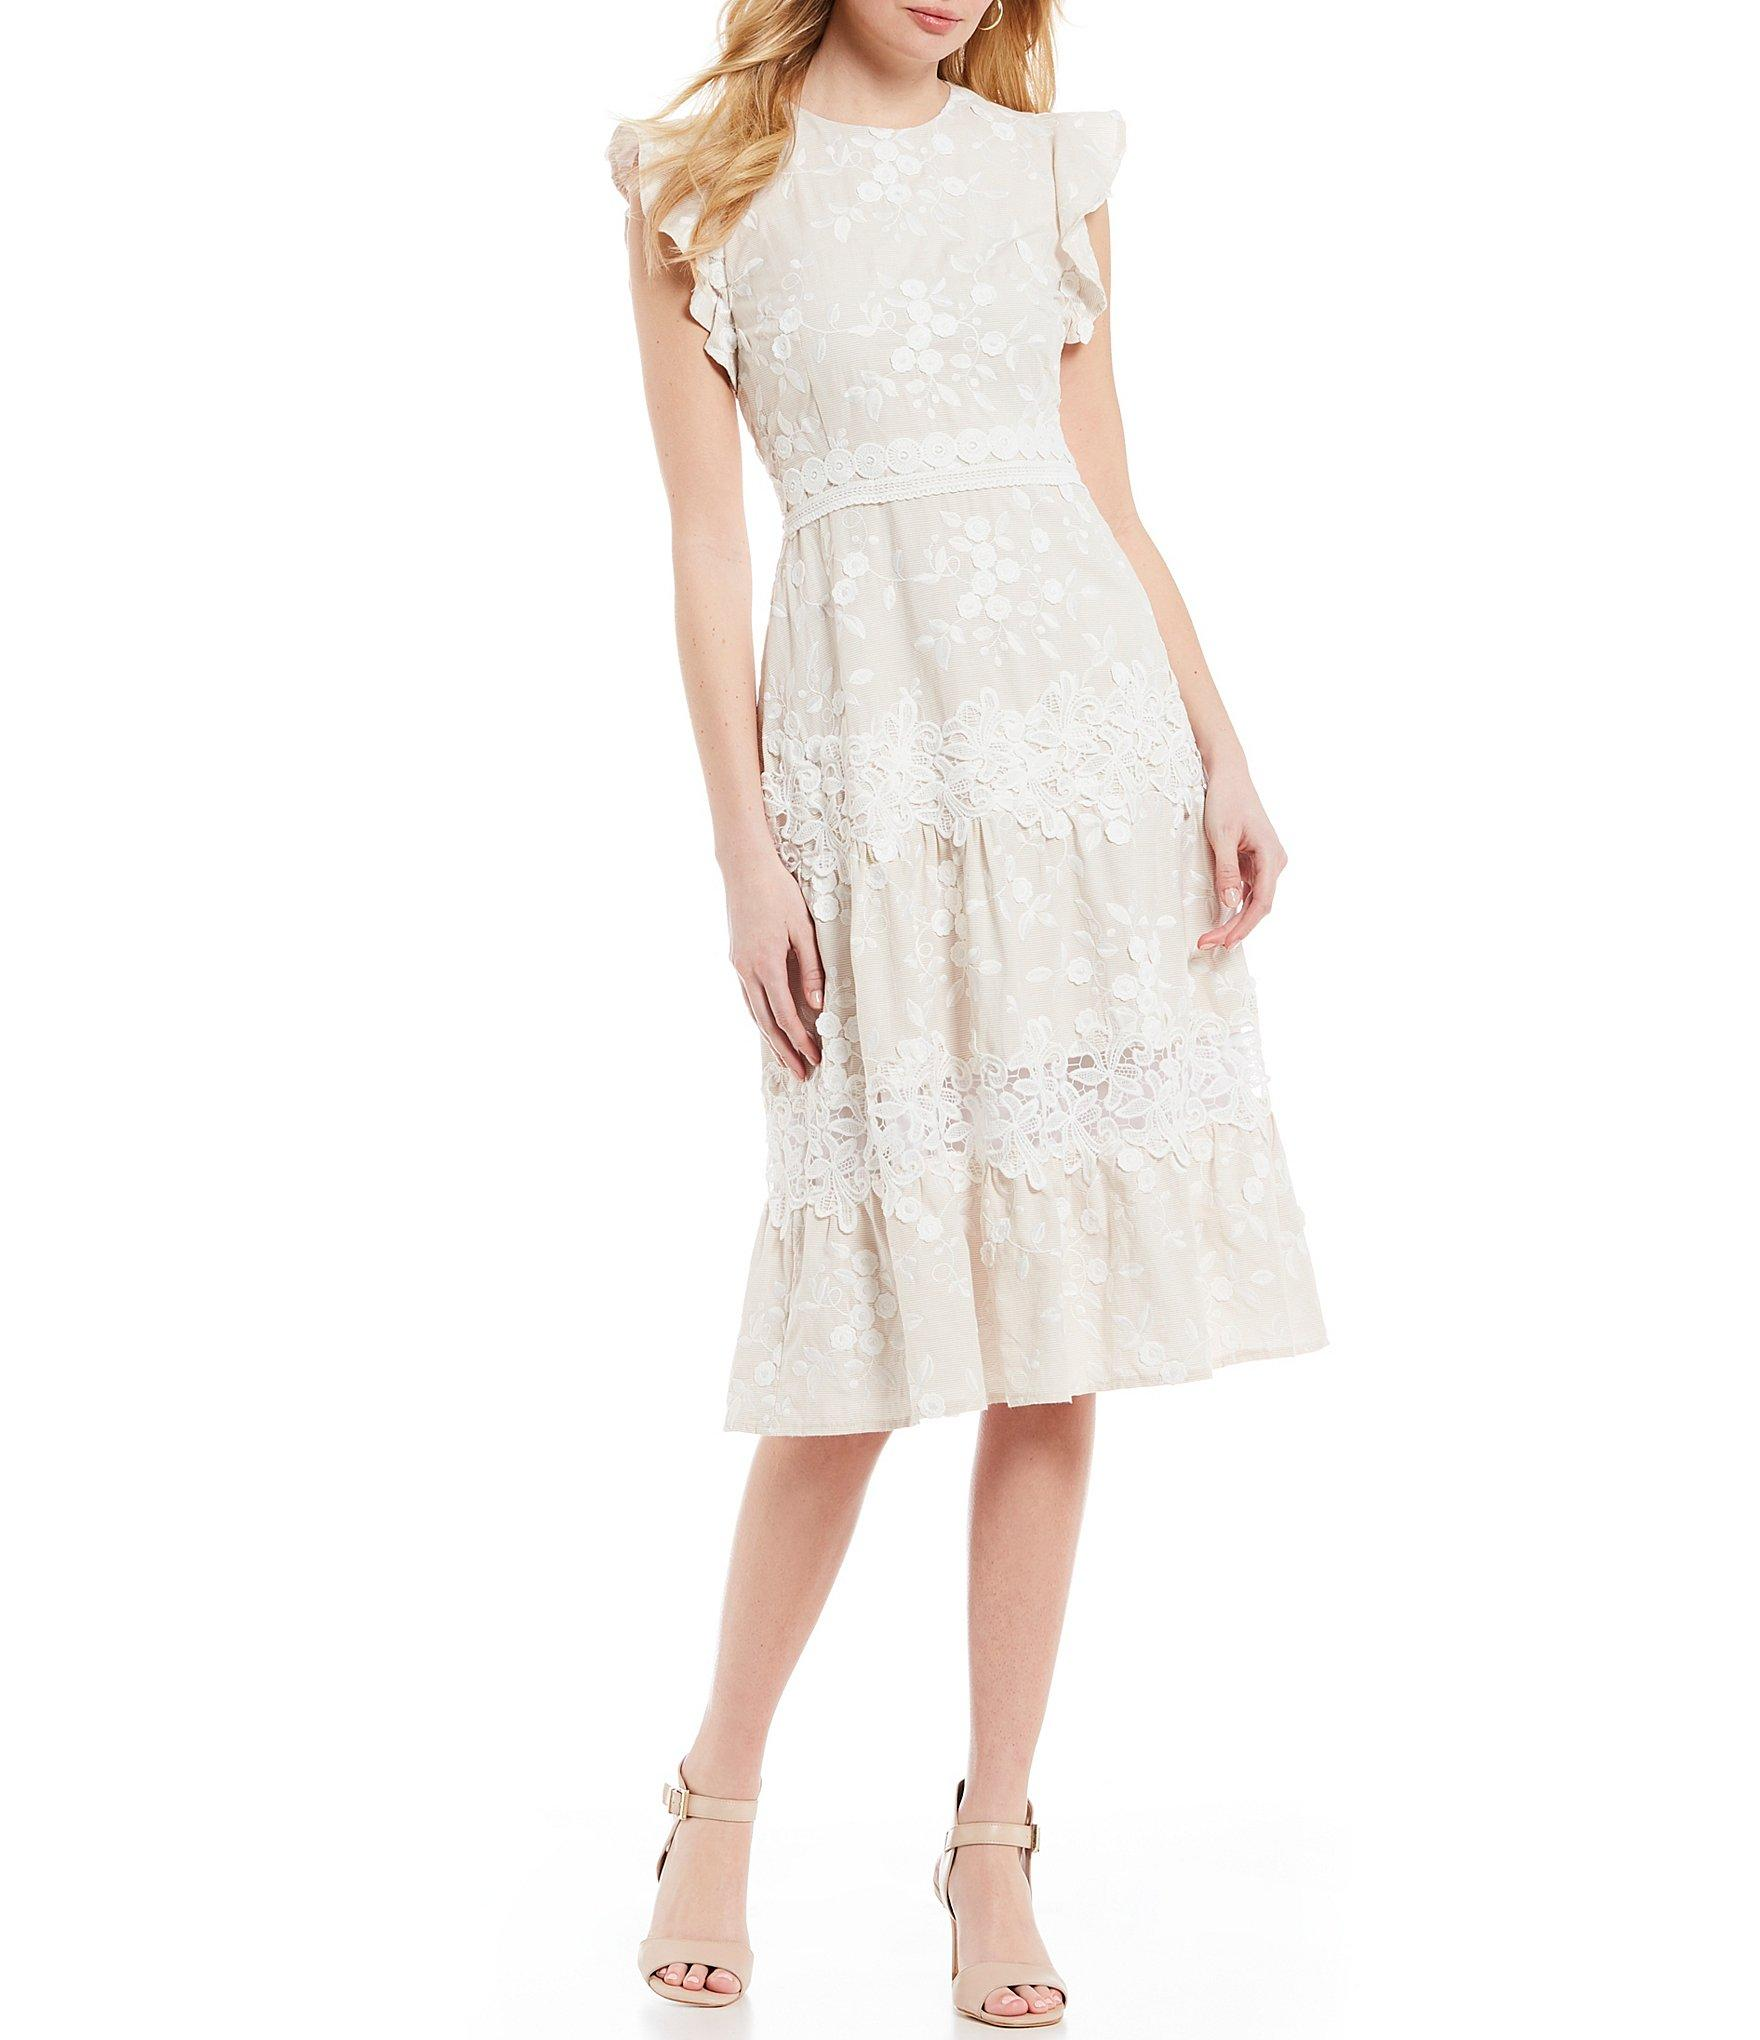 0fdeacb6984 Antonio Melani. Women s White Flutter Janet Sleeve Tiered Ruffle A-line  Midi Dress